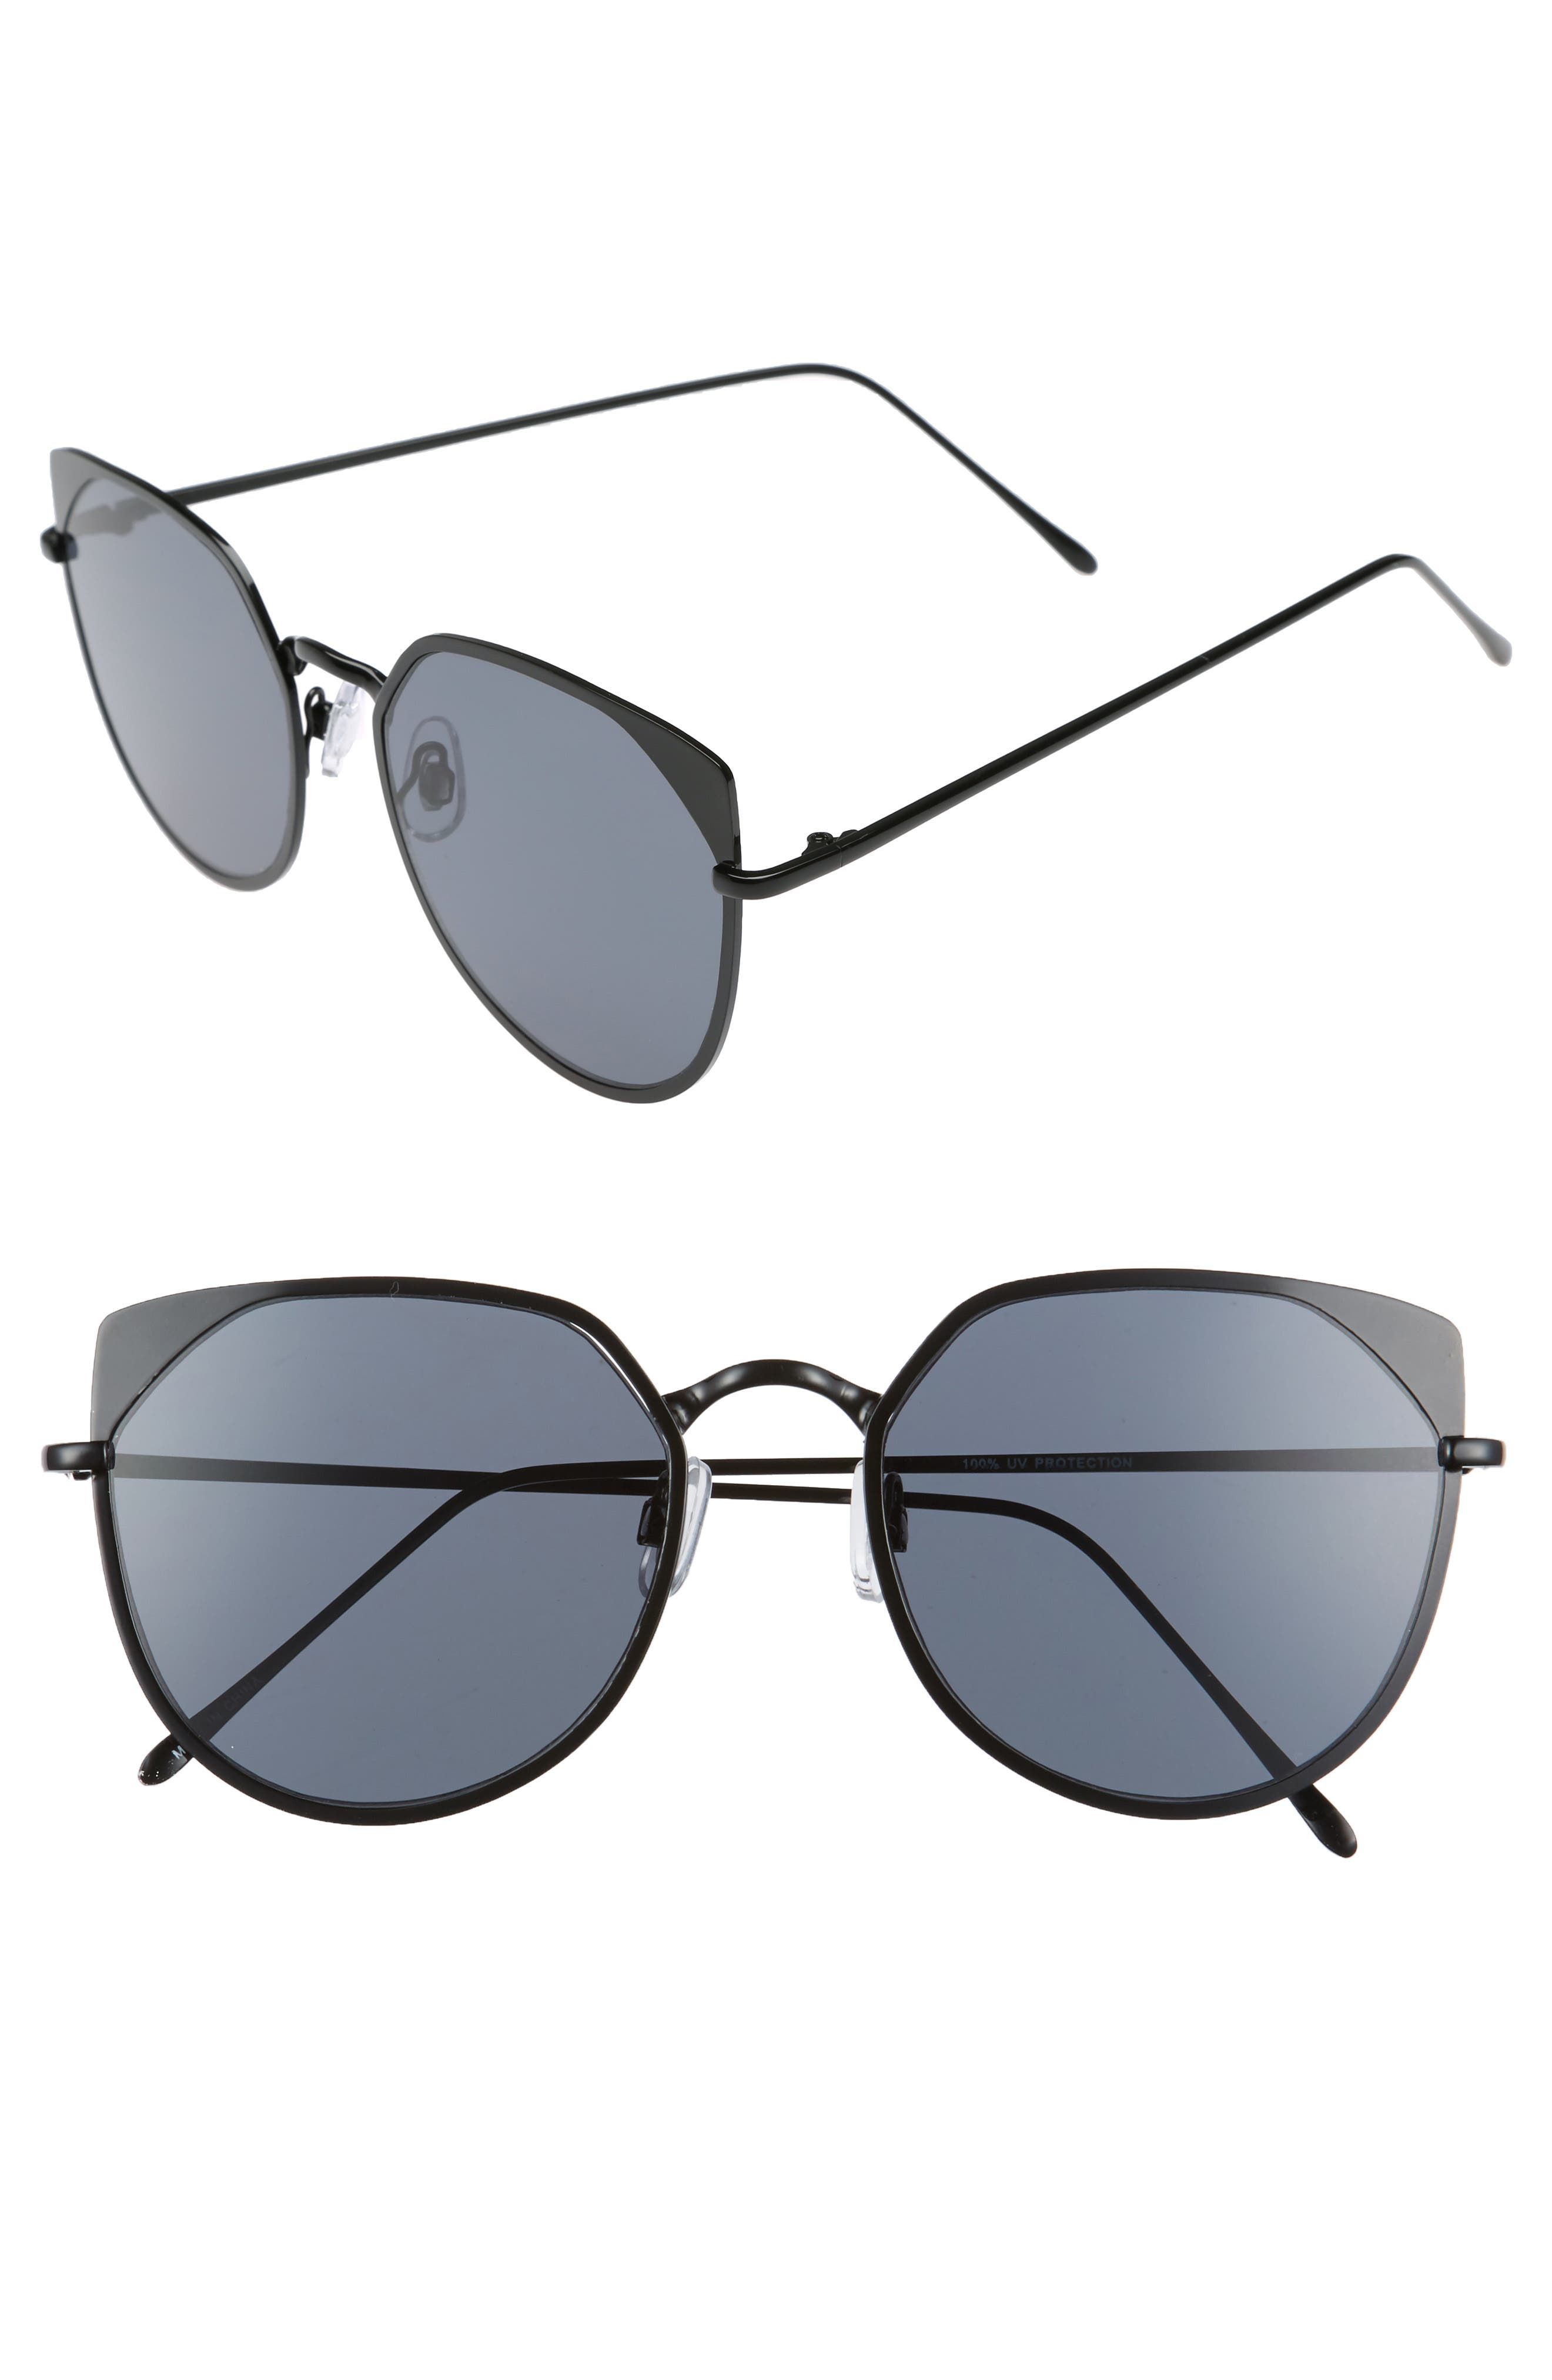 55mm Mirrored Cat Eye Sunglasses,                             Main thumbnail 1, color,                             005